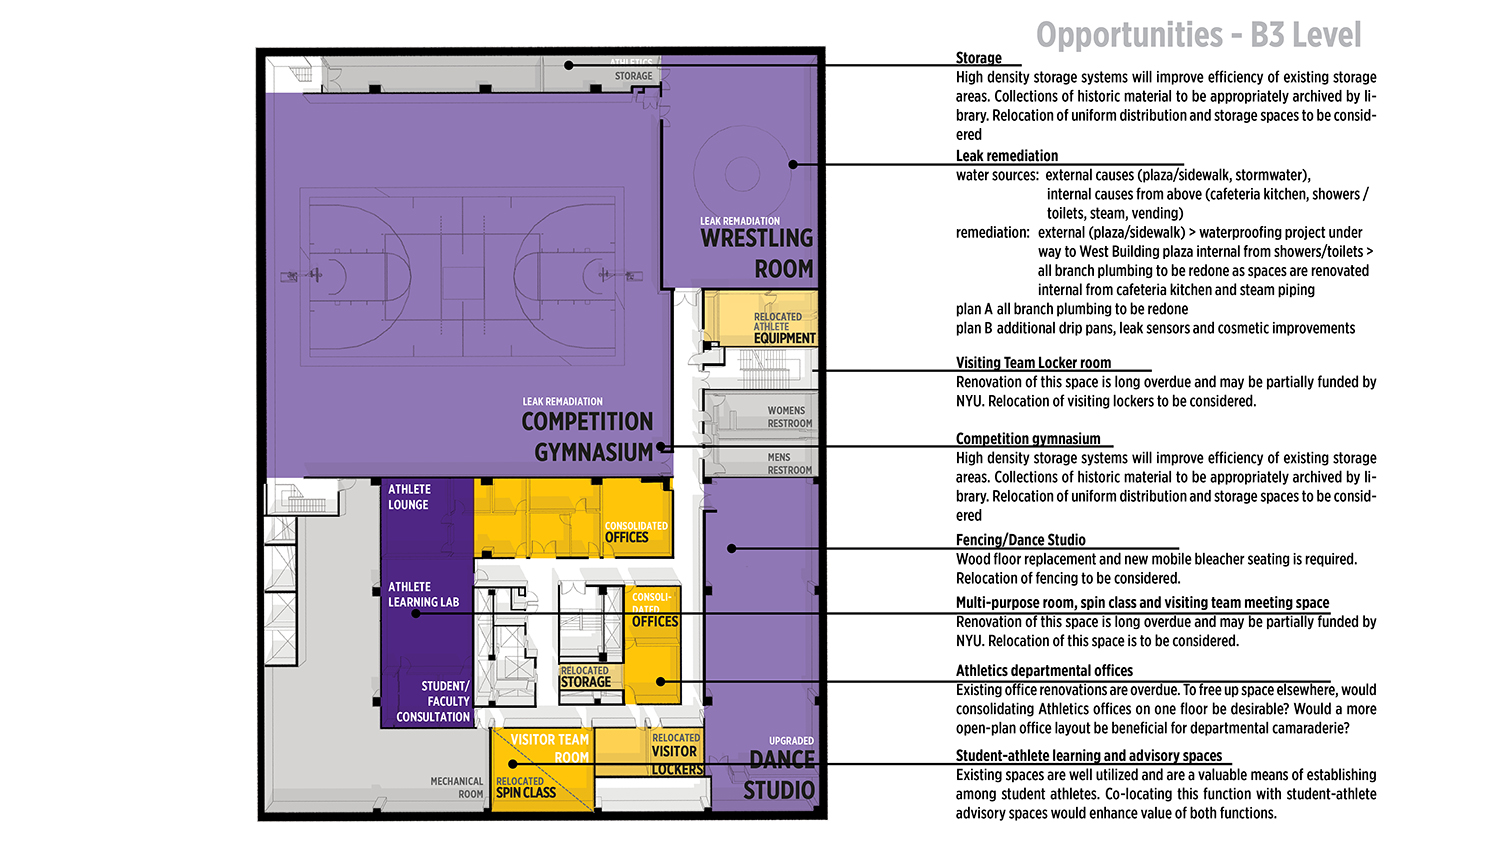 HC Athletics opportunity plan B3.jpg